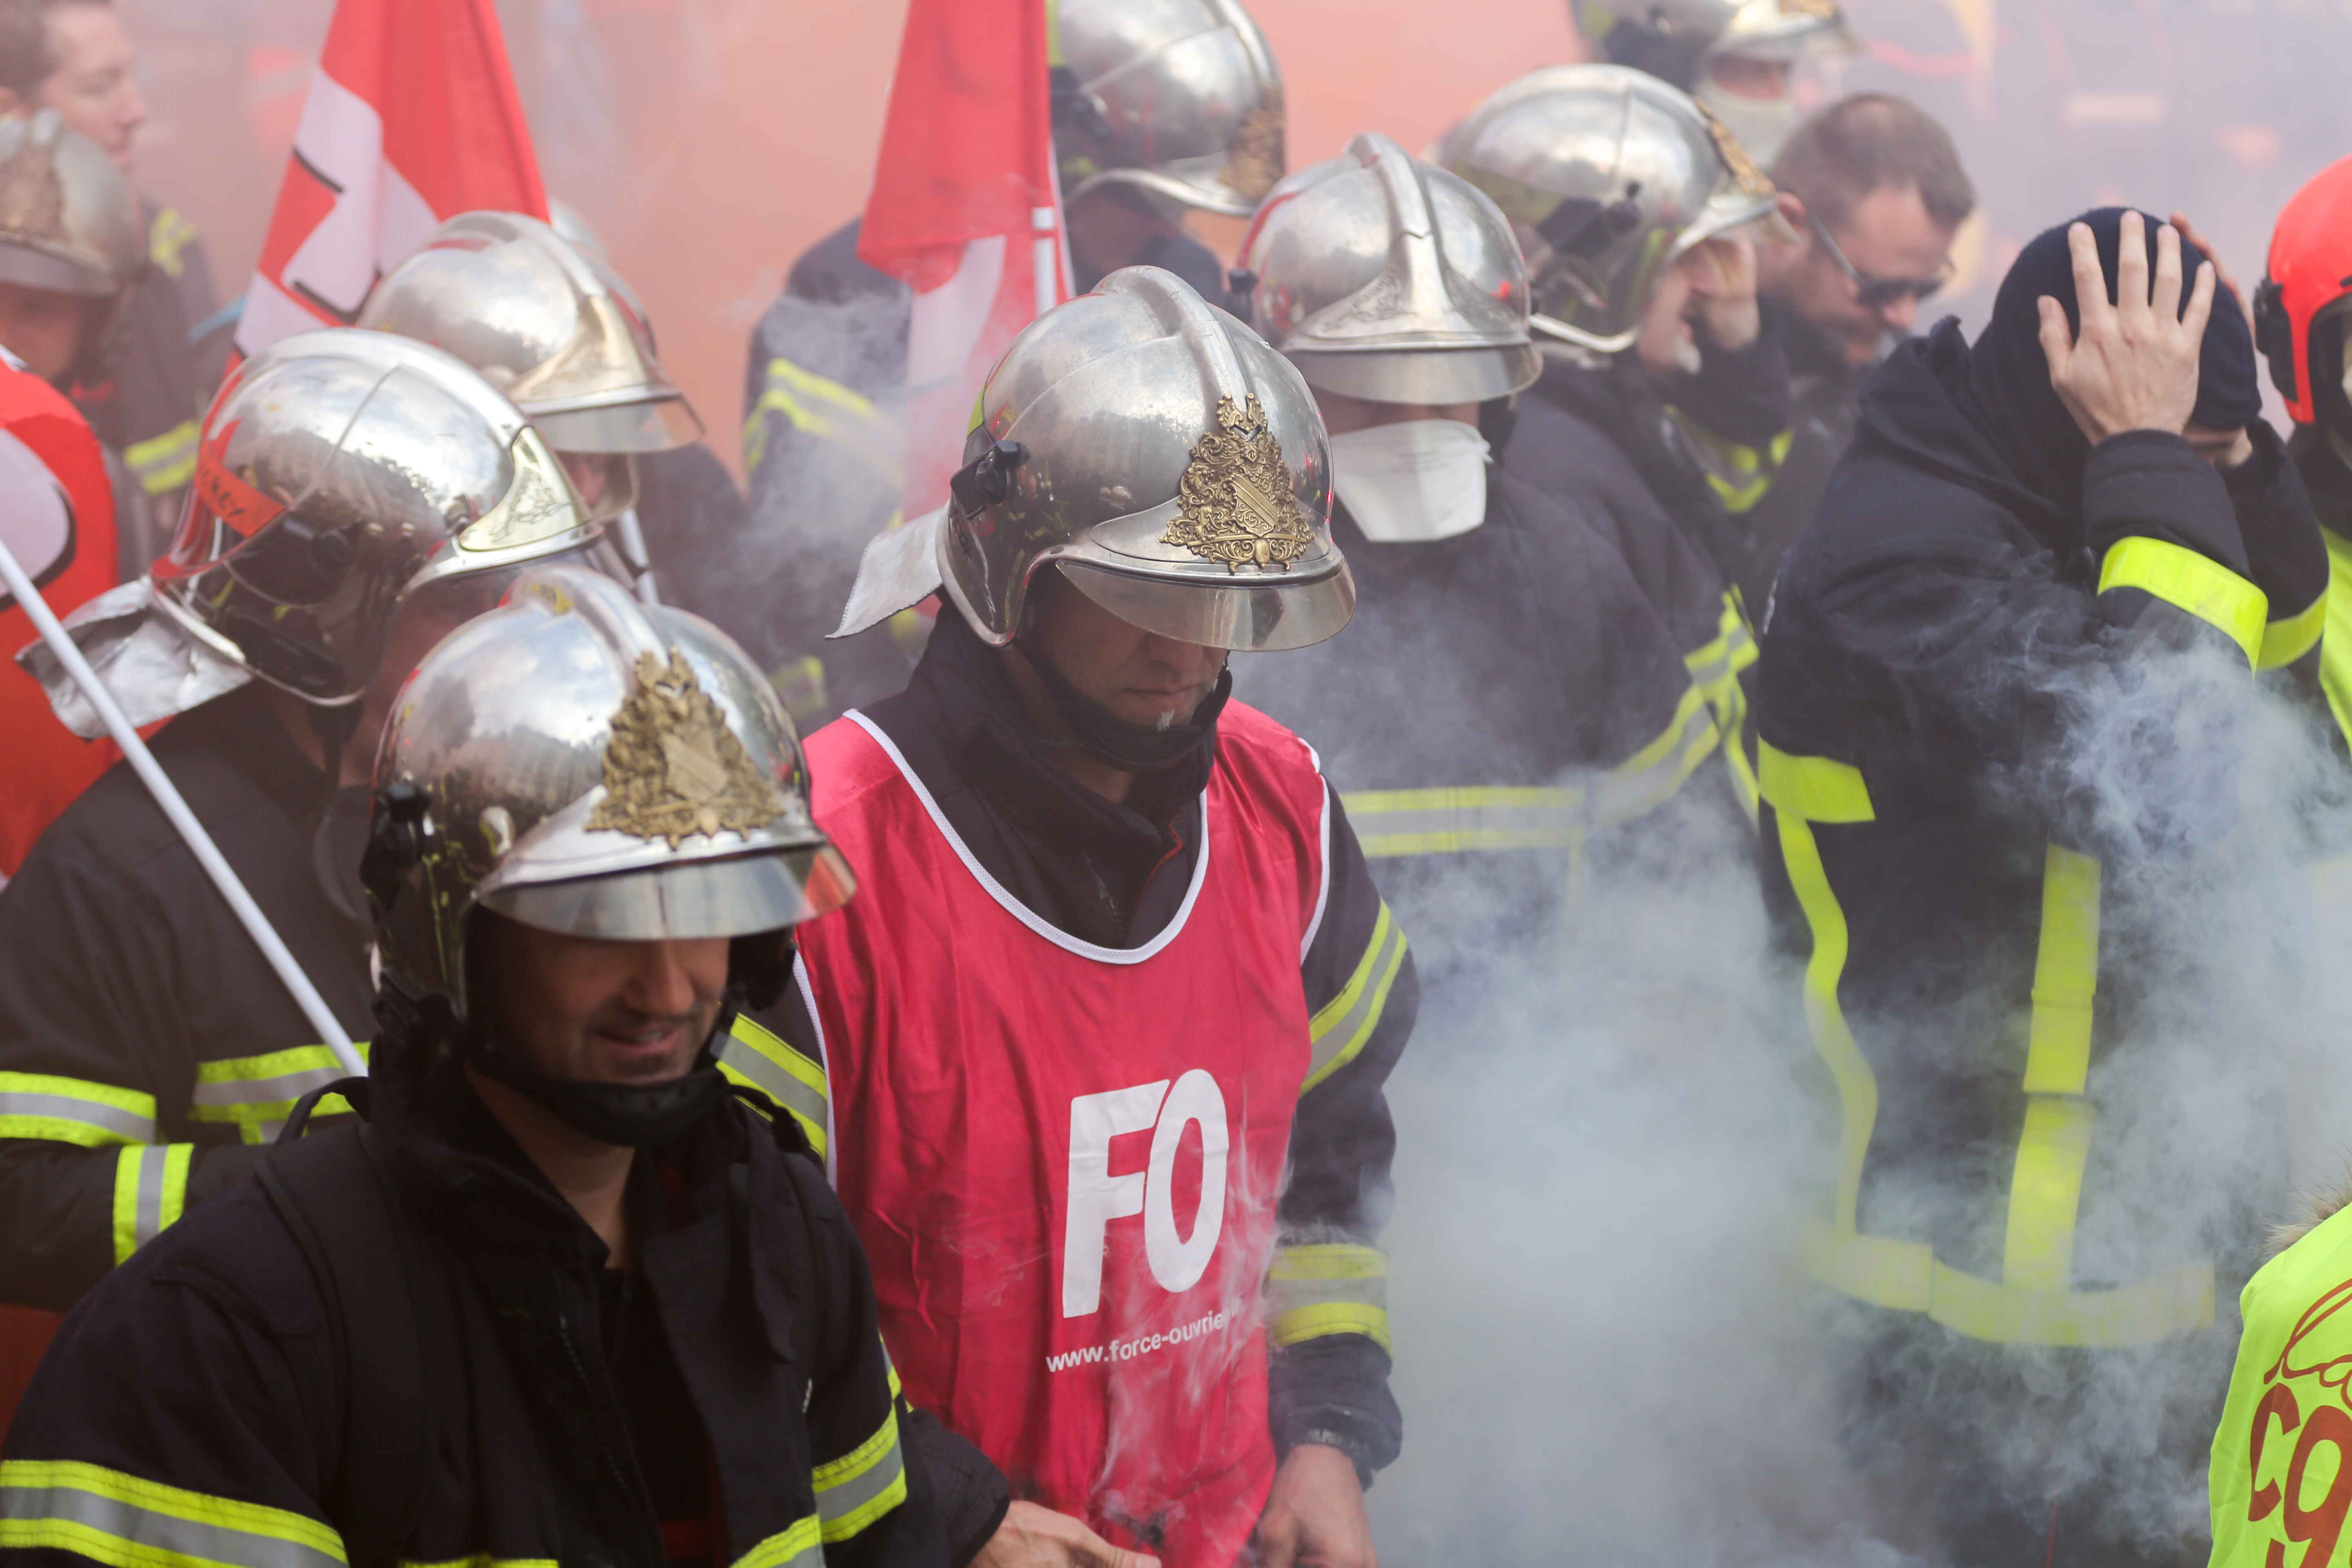 Firefighters protest as they march during the day of mobilization and national demonstration of the professional French firefighters in Paris, on October 15, 2019.